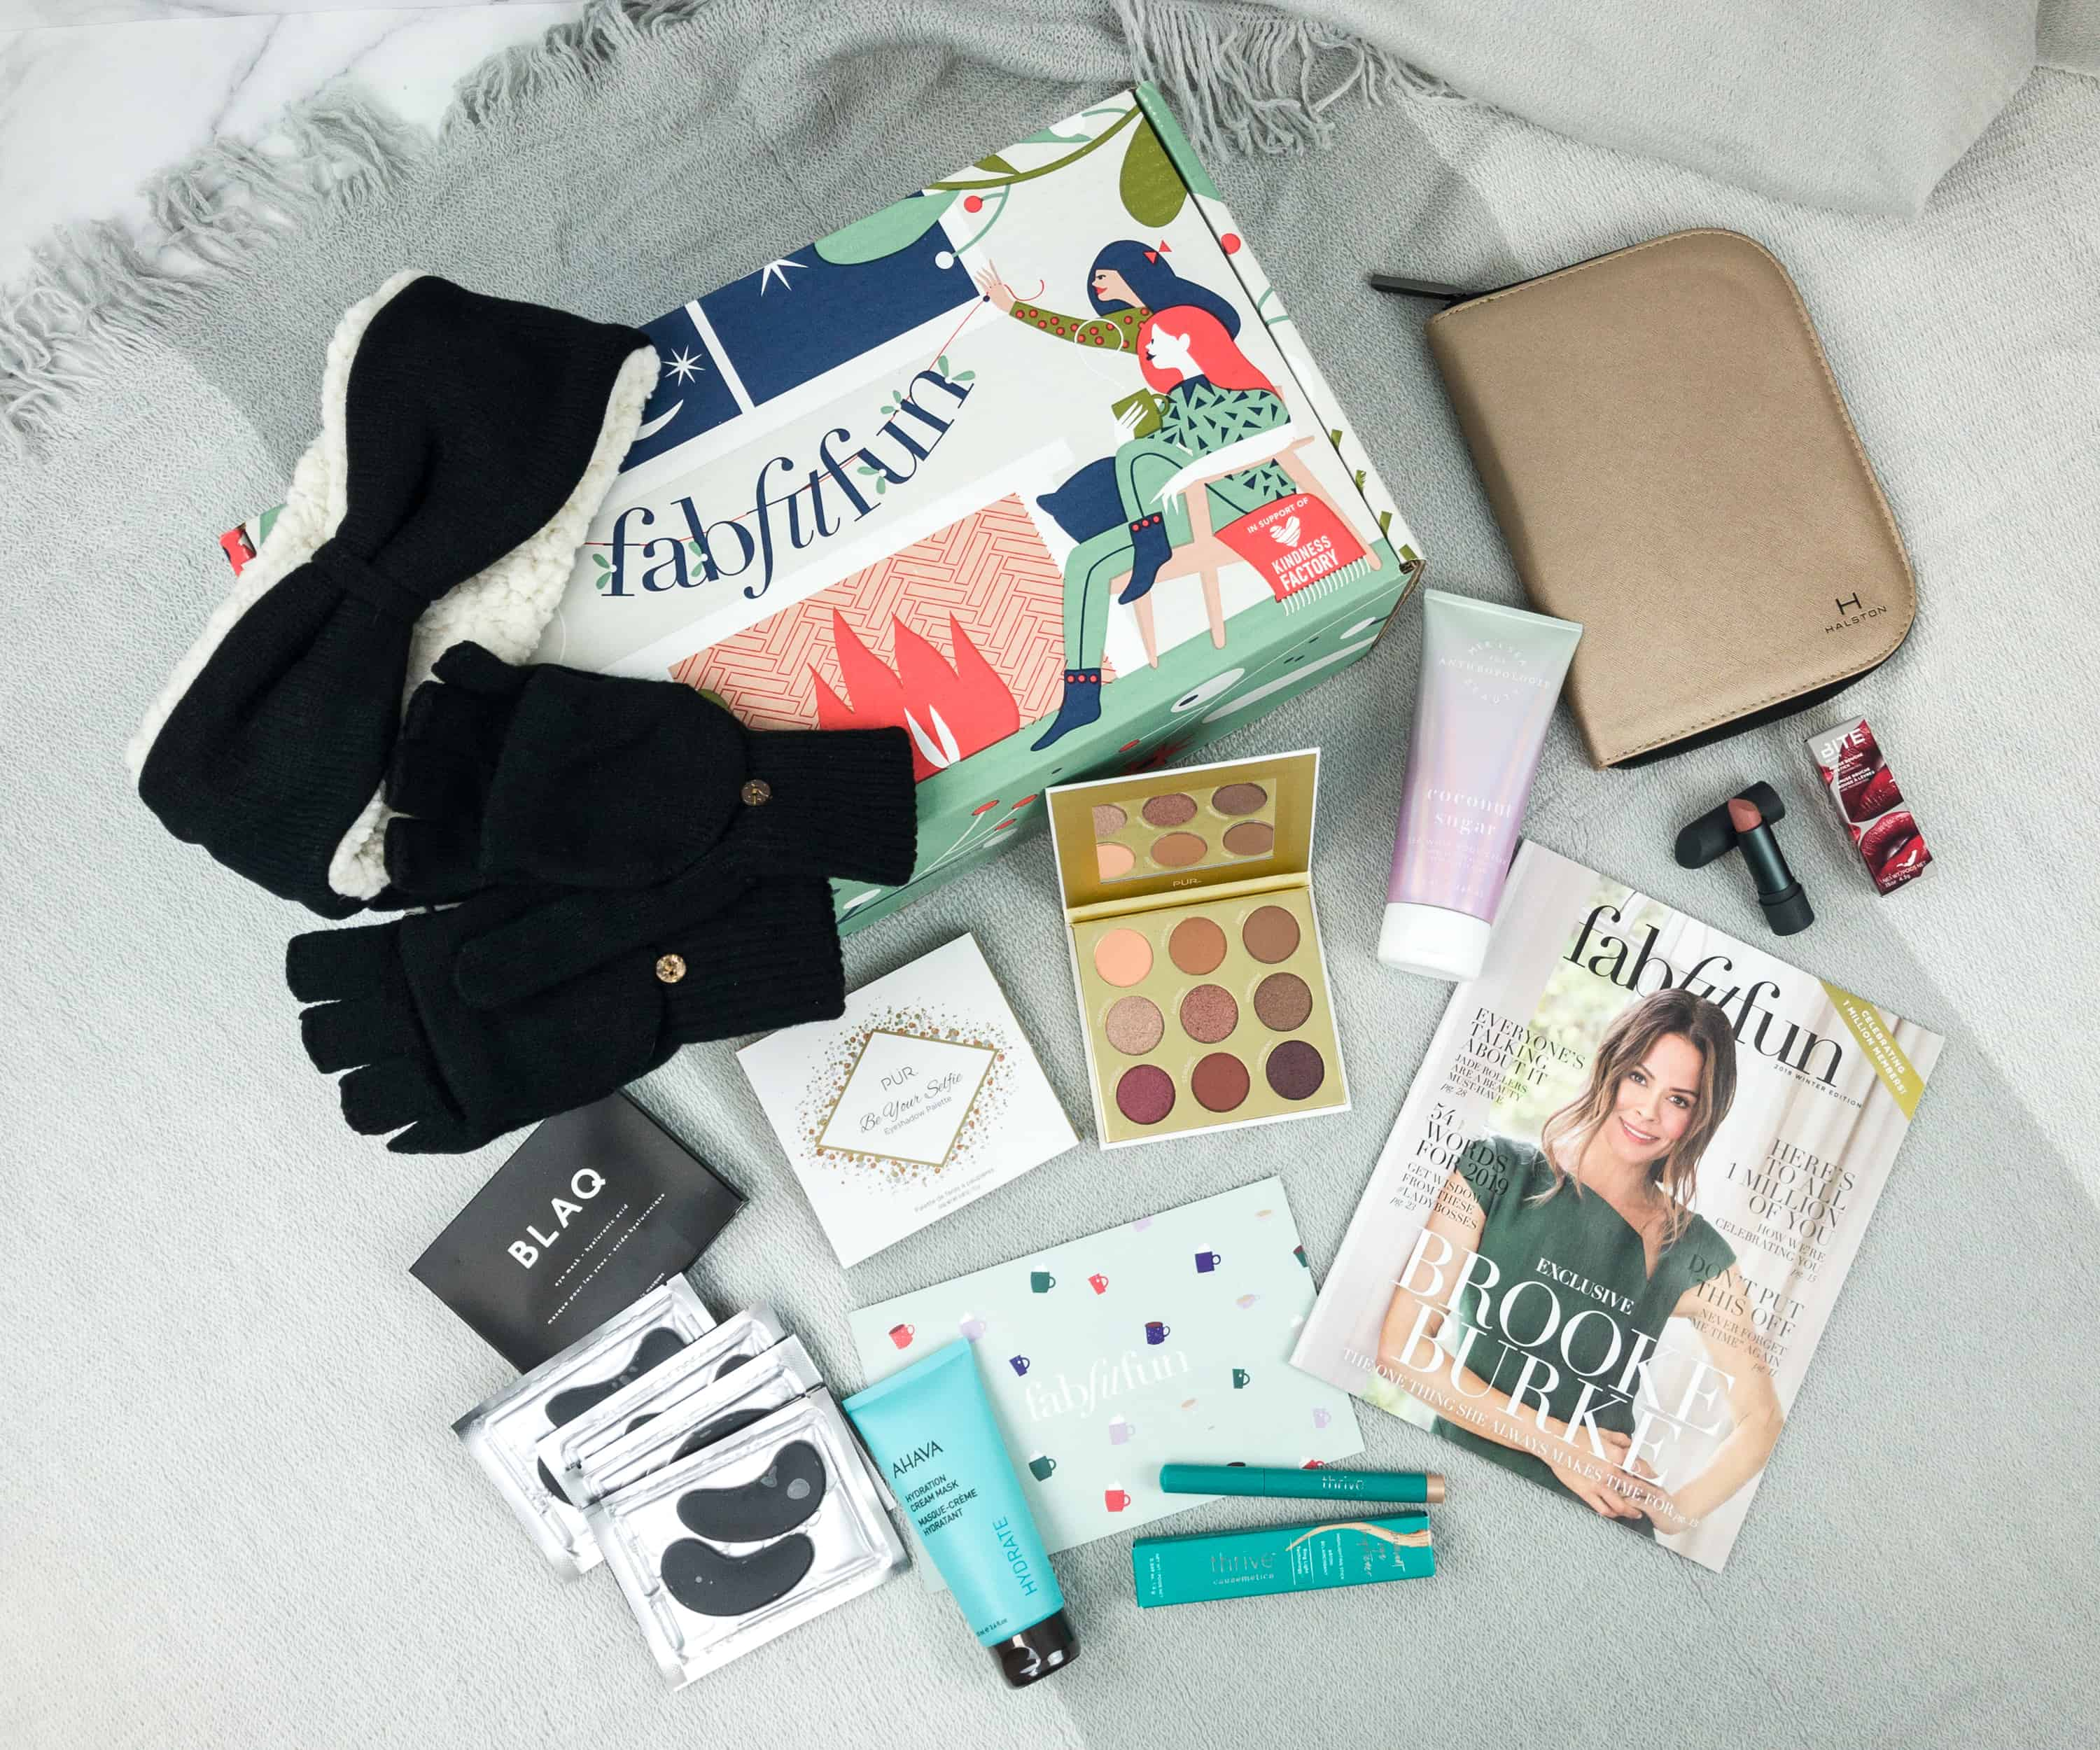 FabFitFun Box Coupon: Save $20 On First Box!